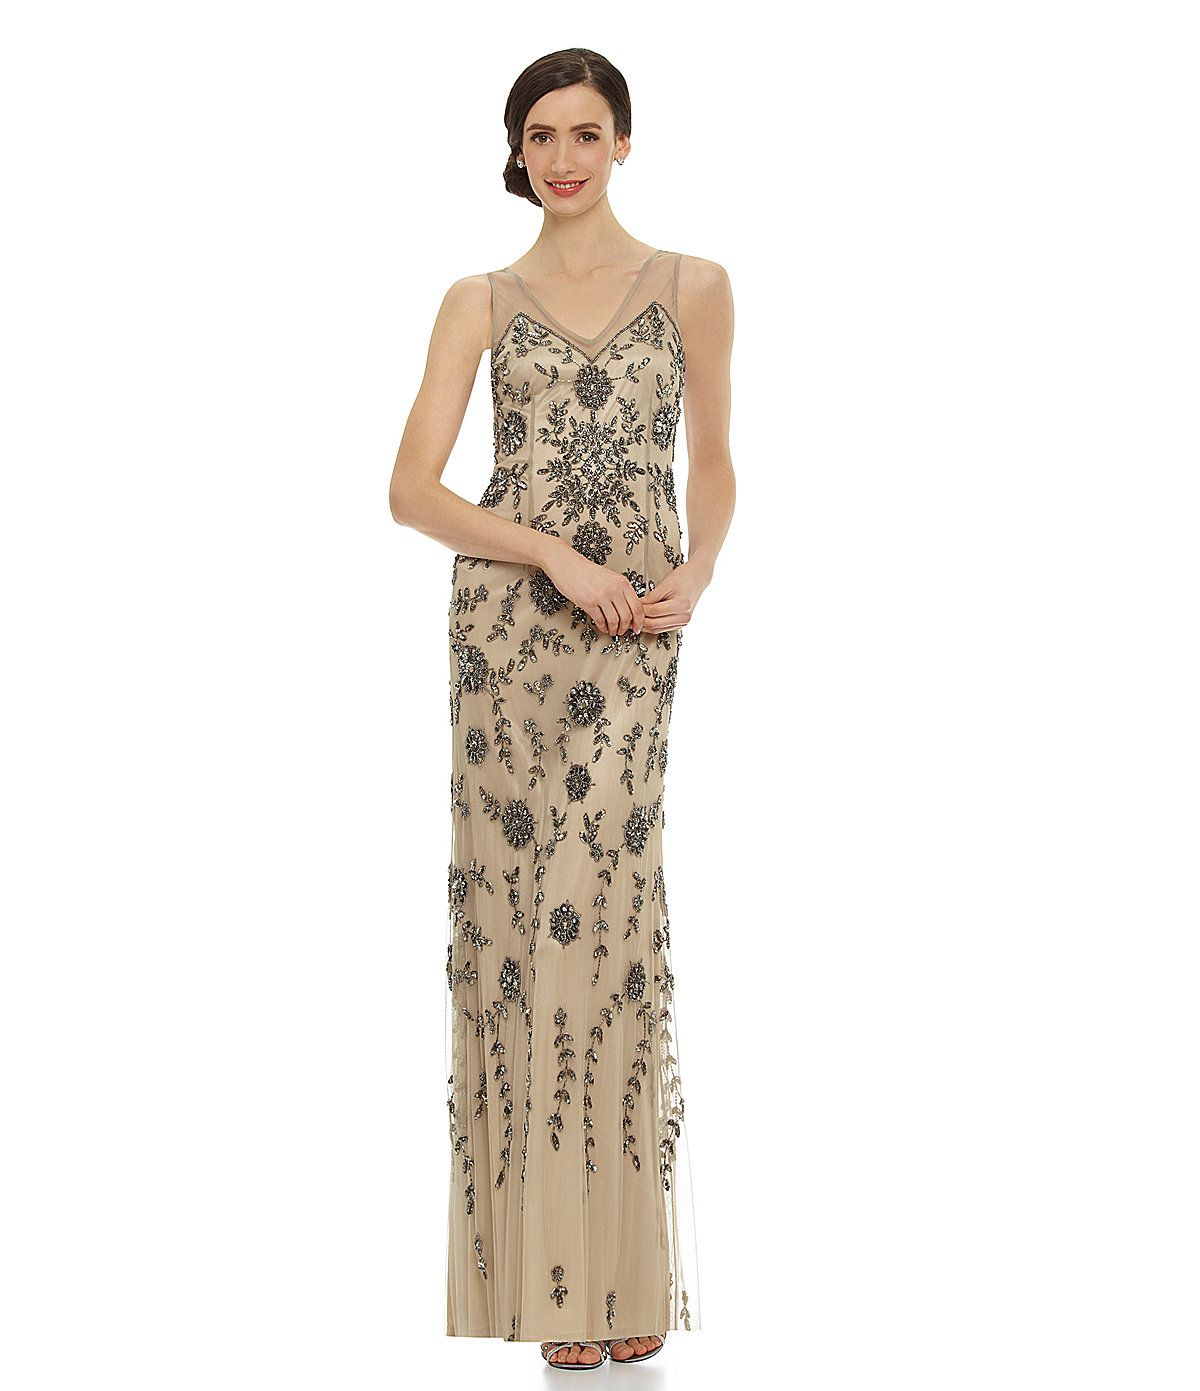 Adrianna Papell Illusion-Strap Beaded Gown   Dillards.com $198